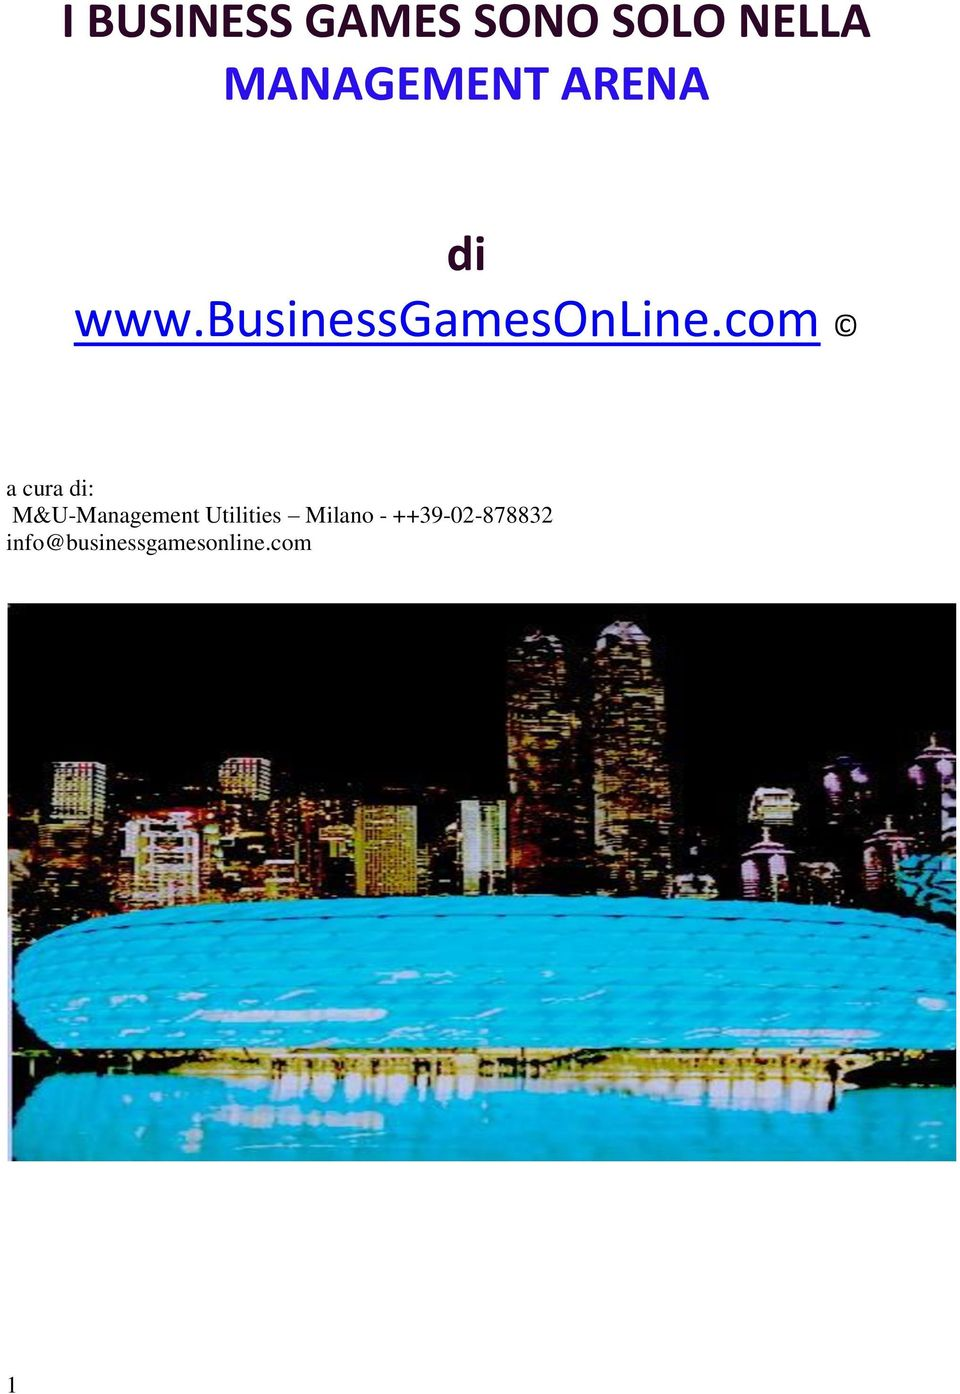 businessgamesonline.